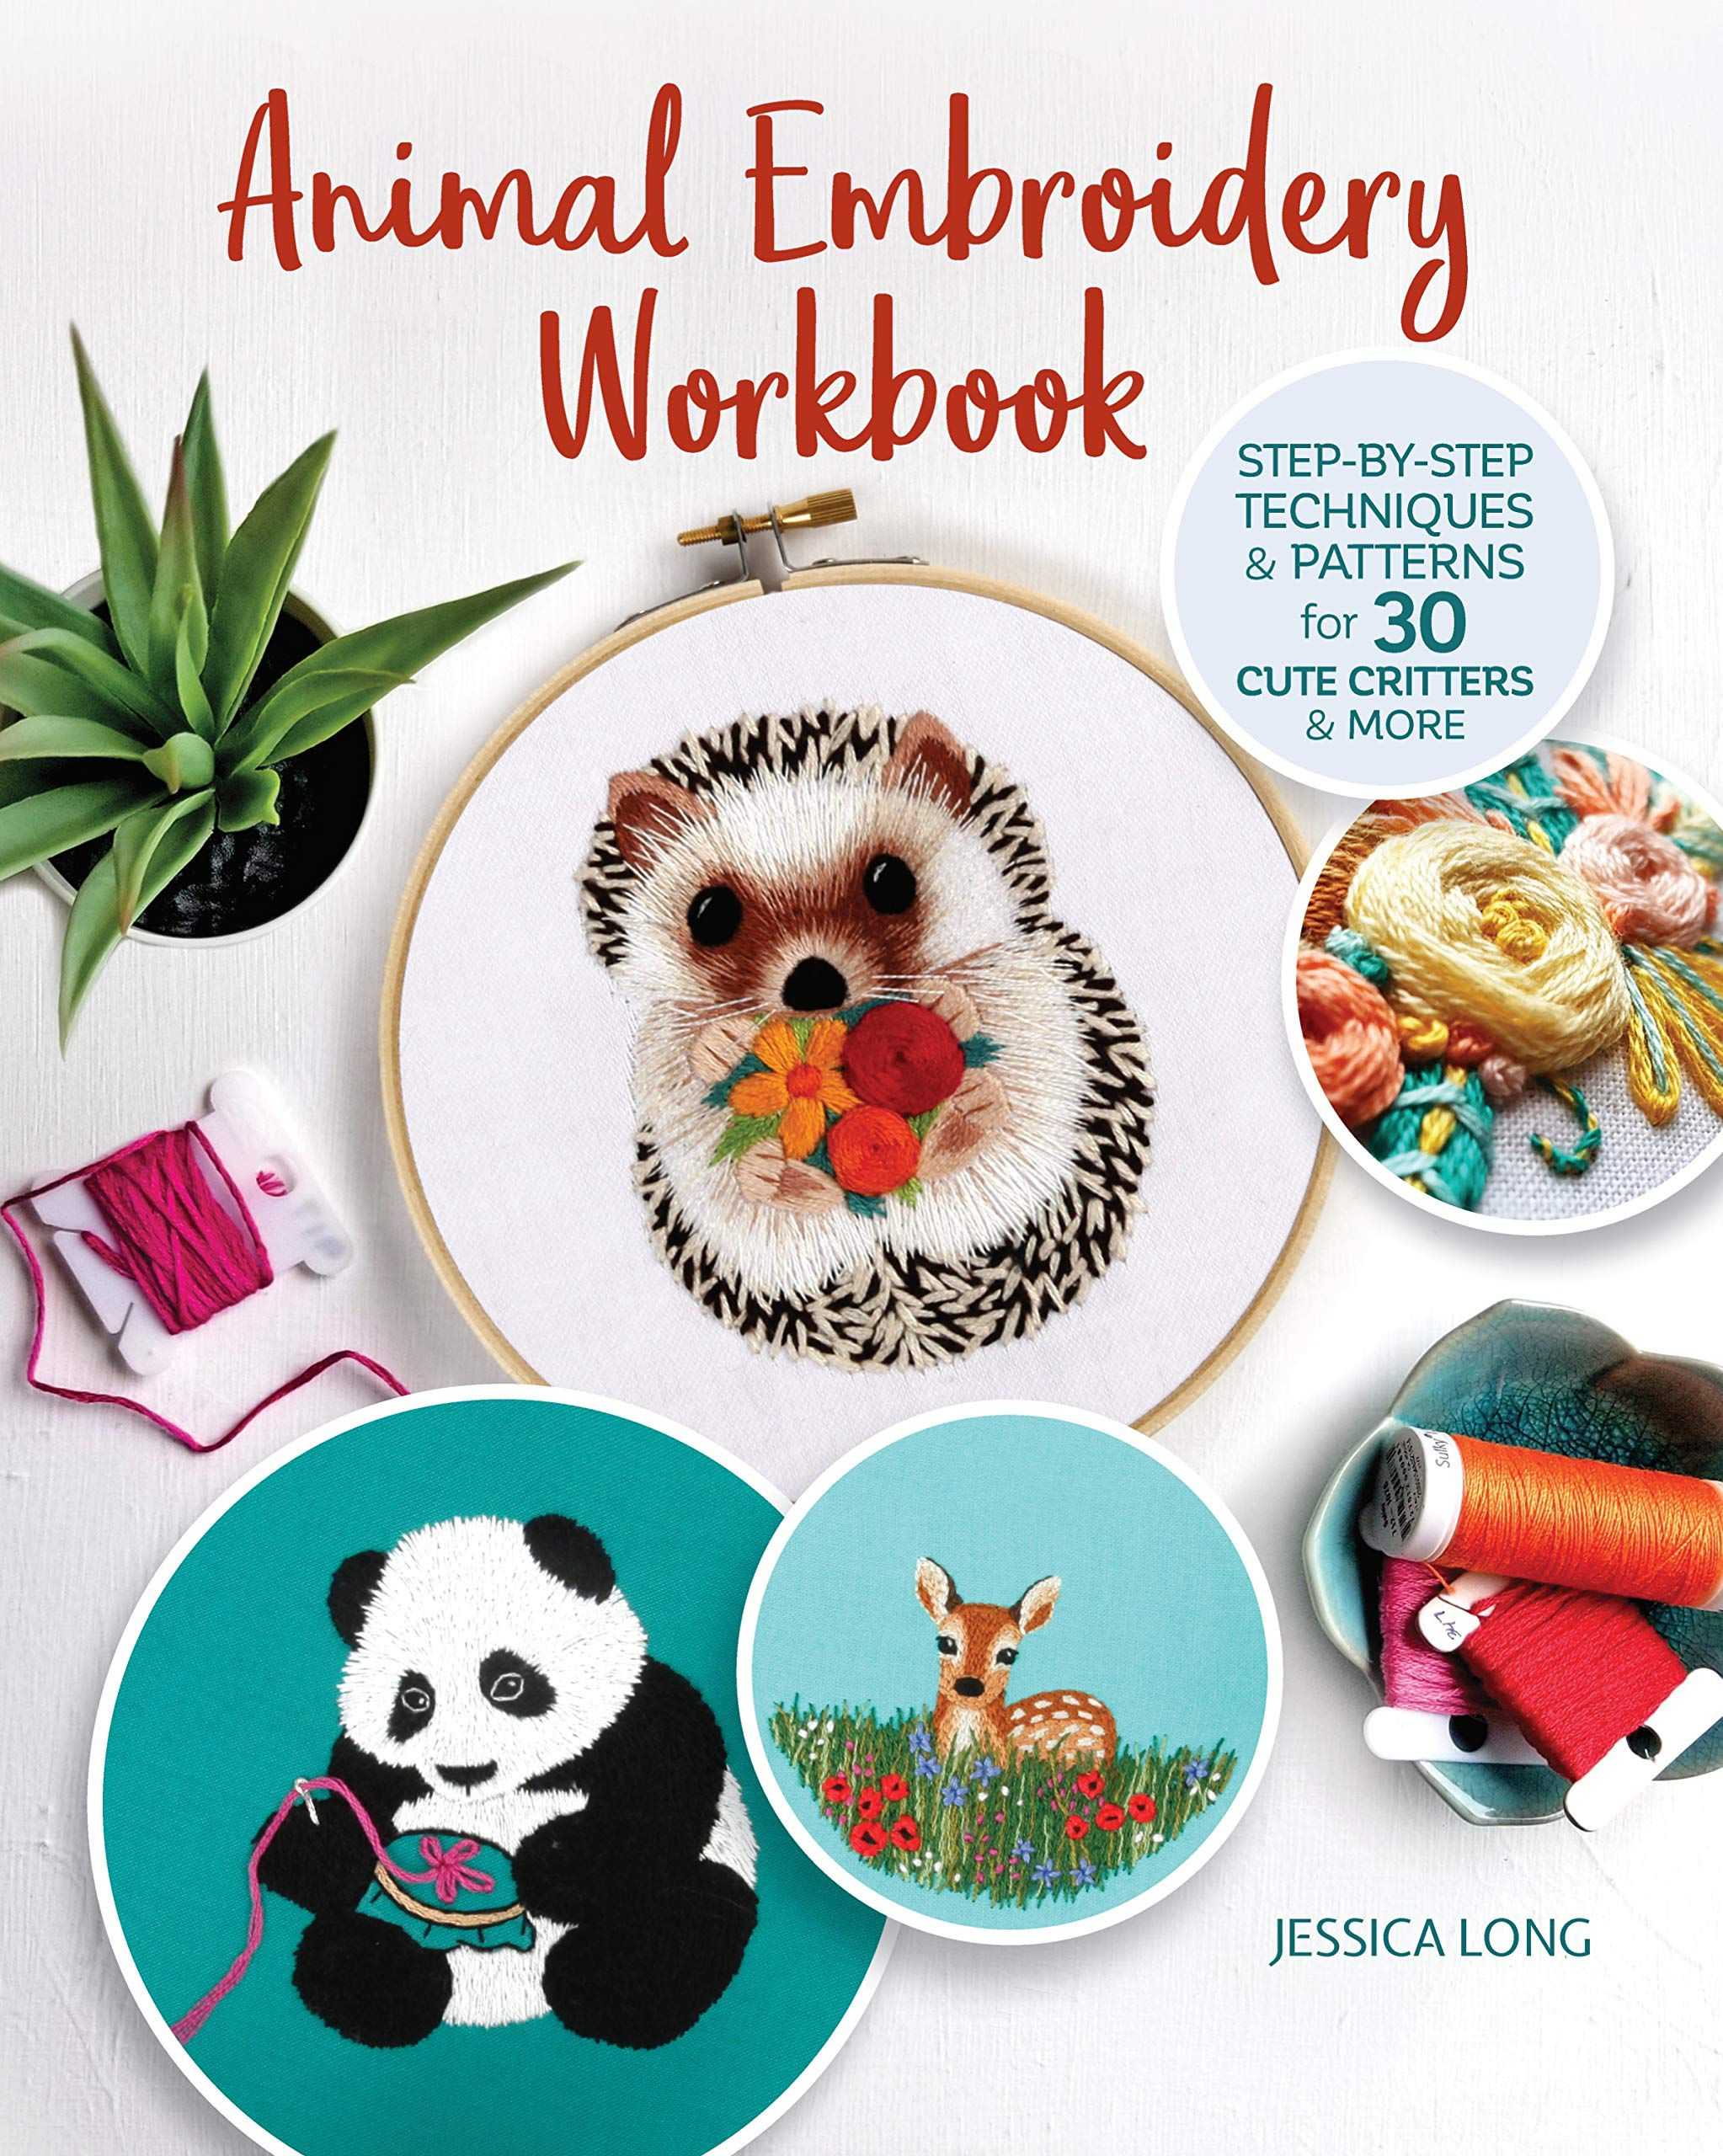 Book cover image of the Animal Embroidery Workbook